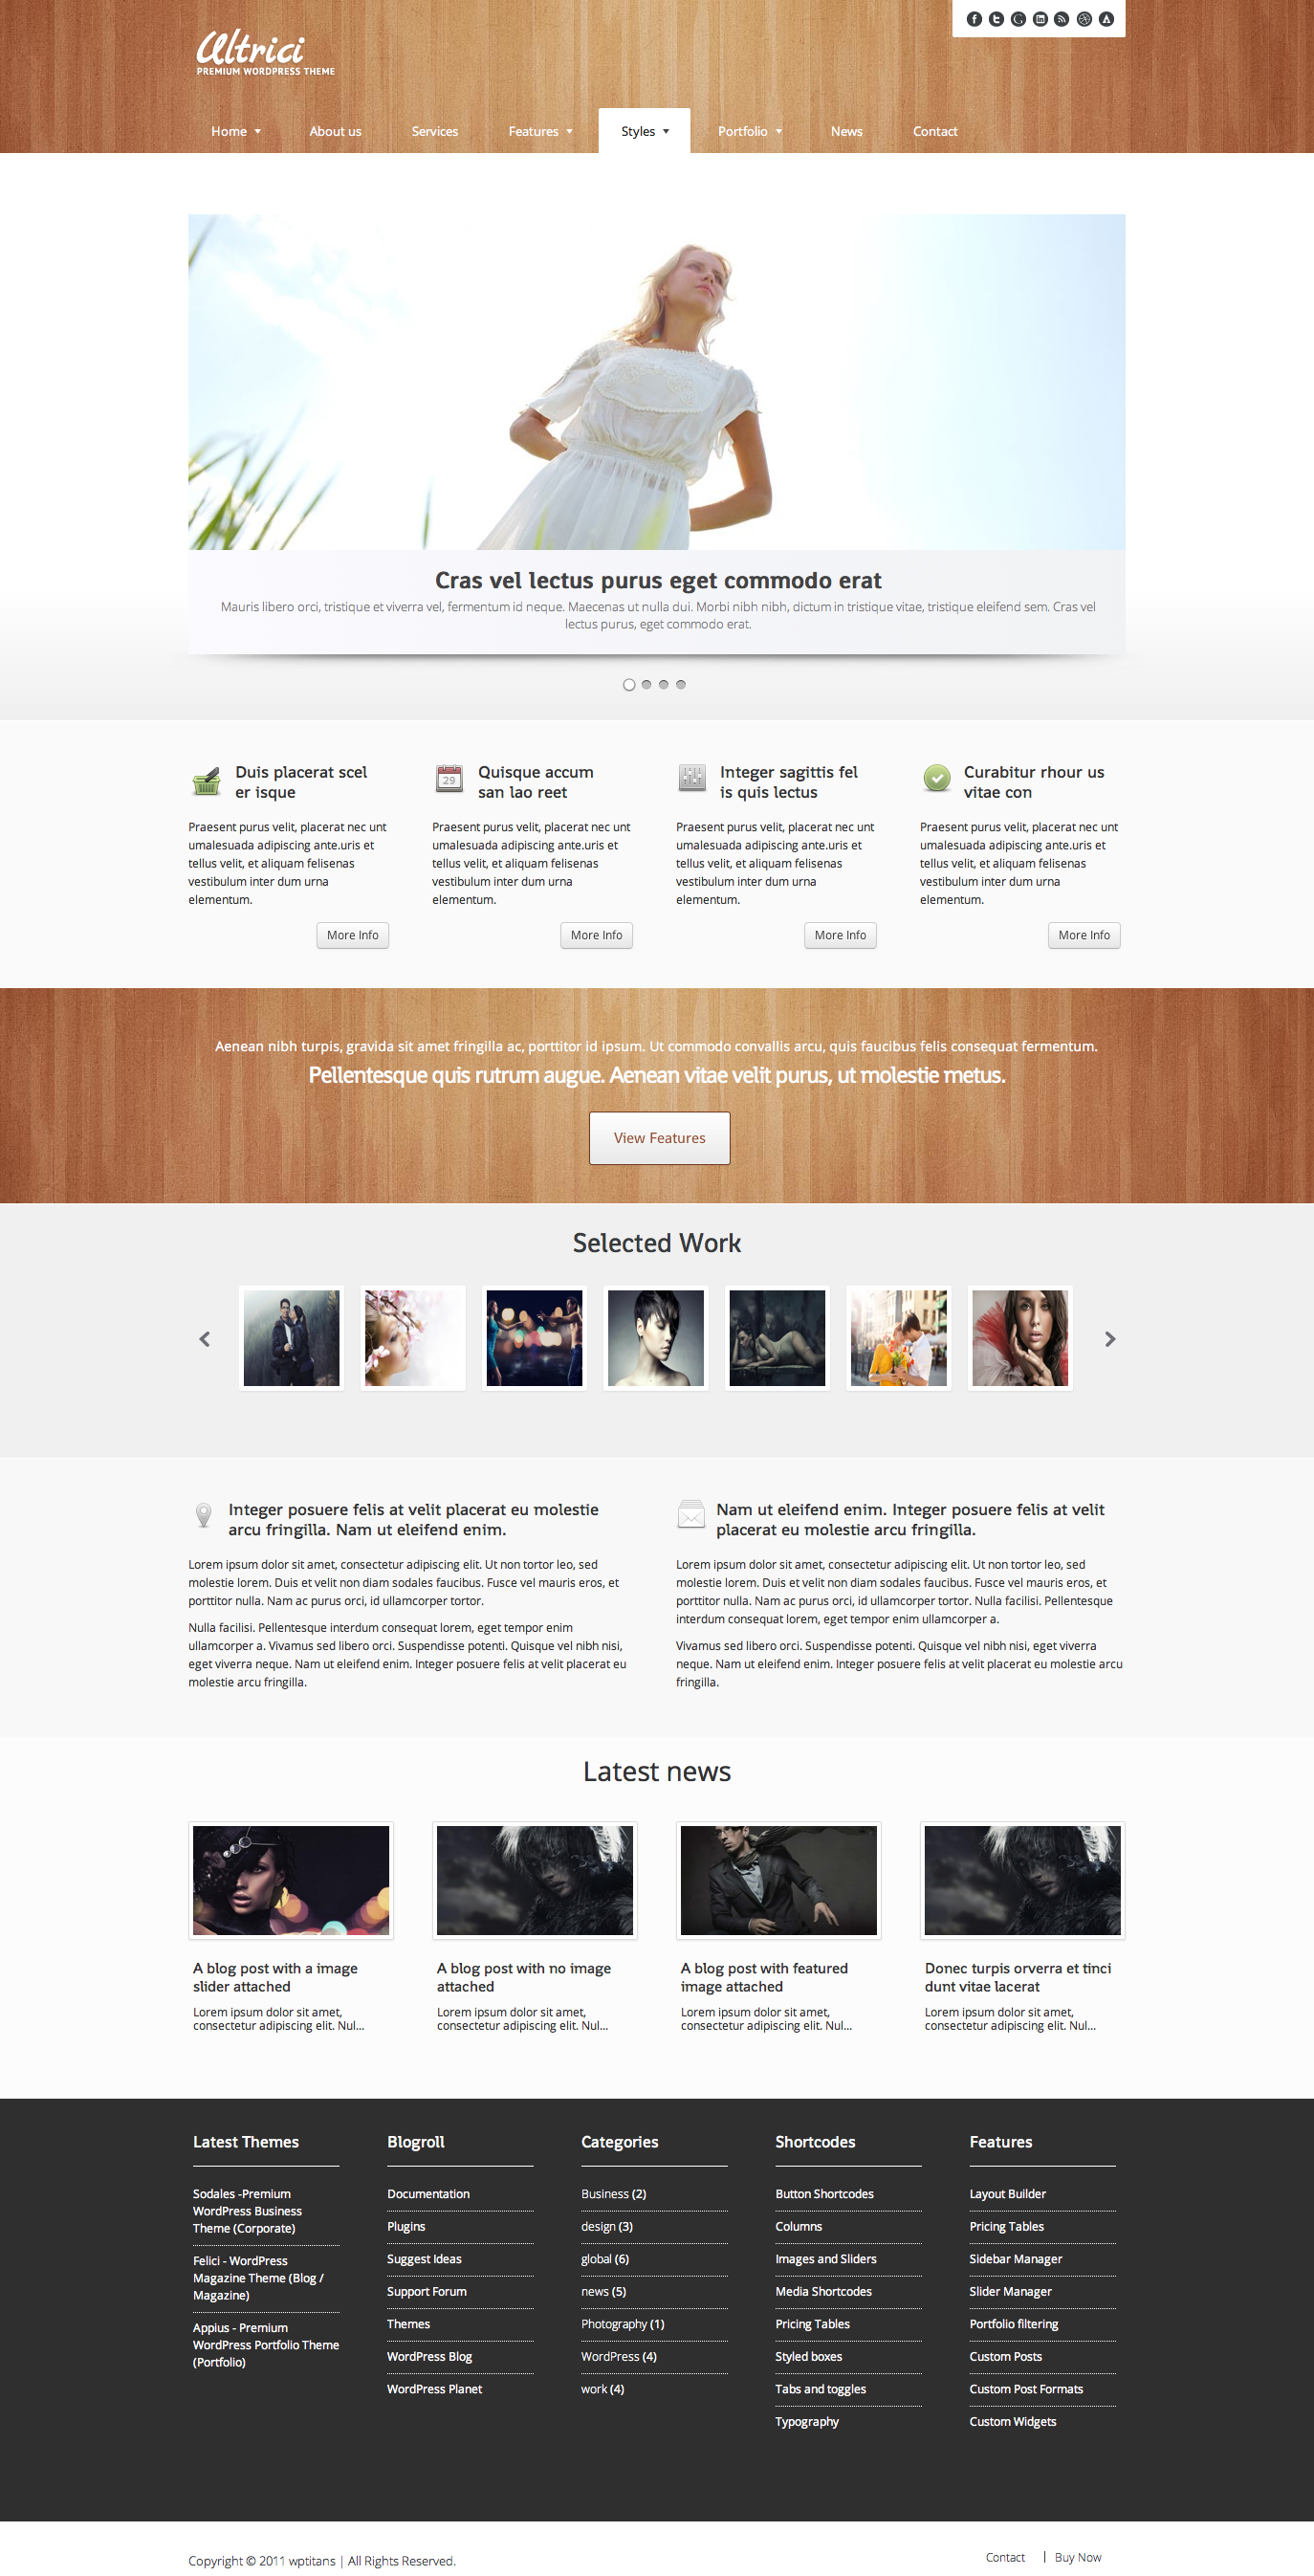 Ultrici - Premium WordPress Theme